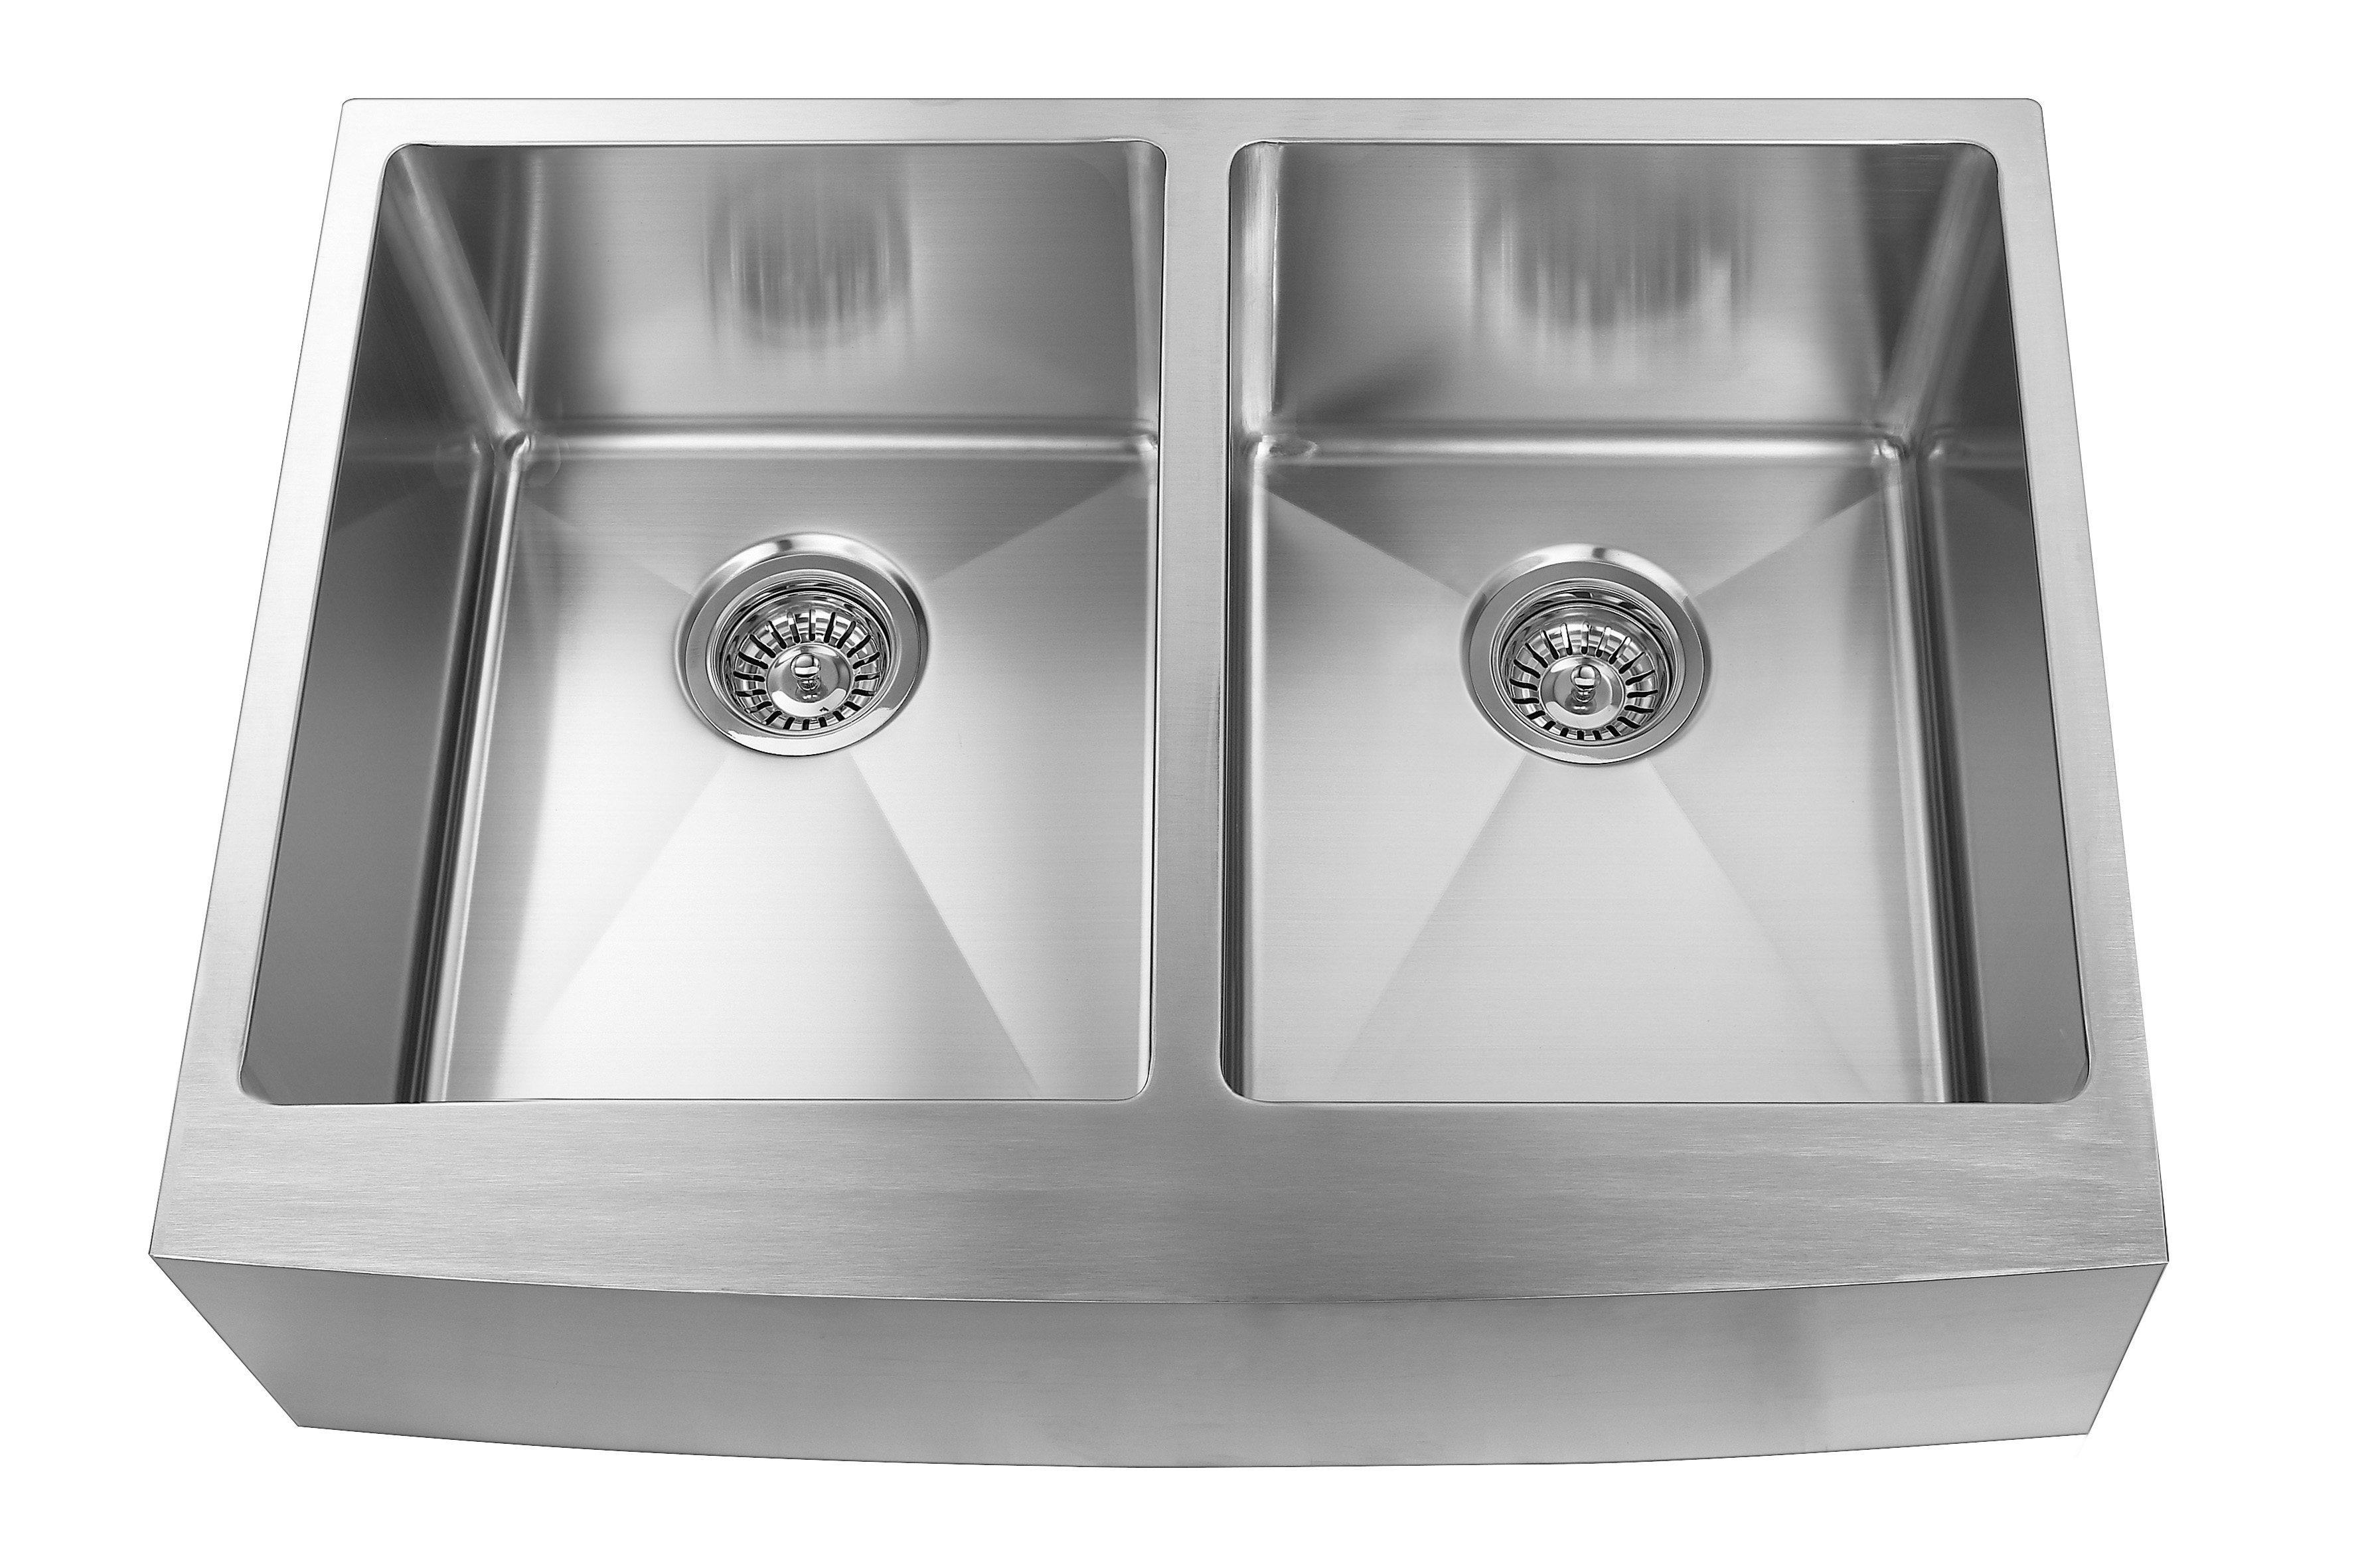 Elegant Stainless Farmhouse Apron Double Kitchen Sink 30 In Stainless Steel Lowe S Canada